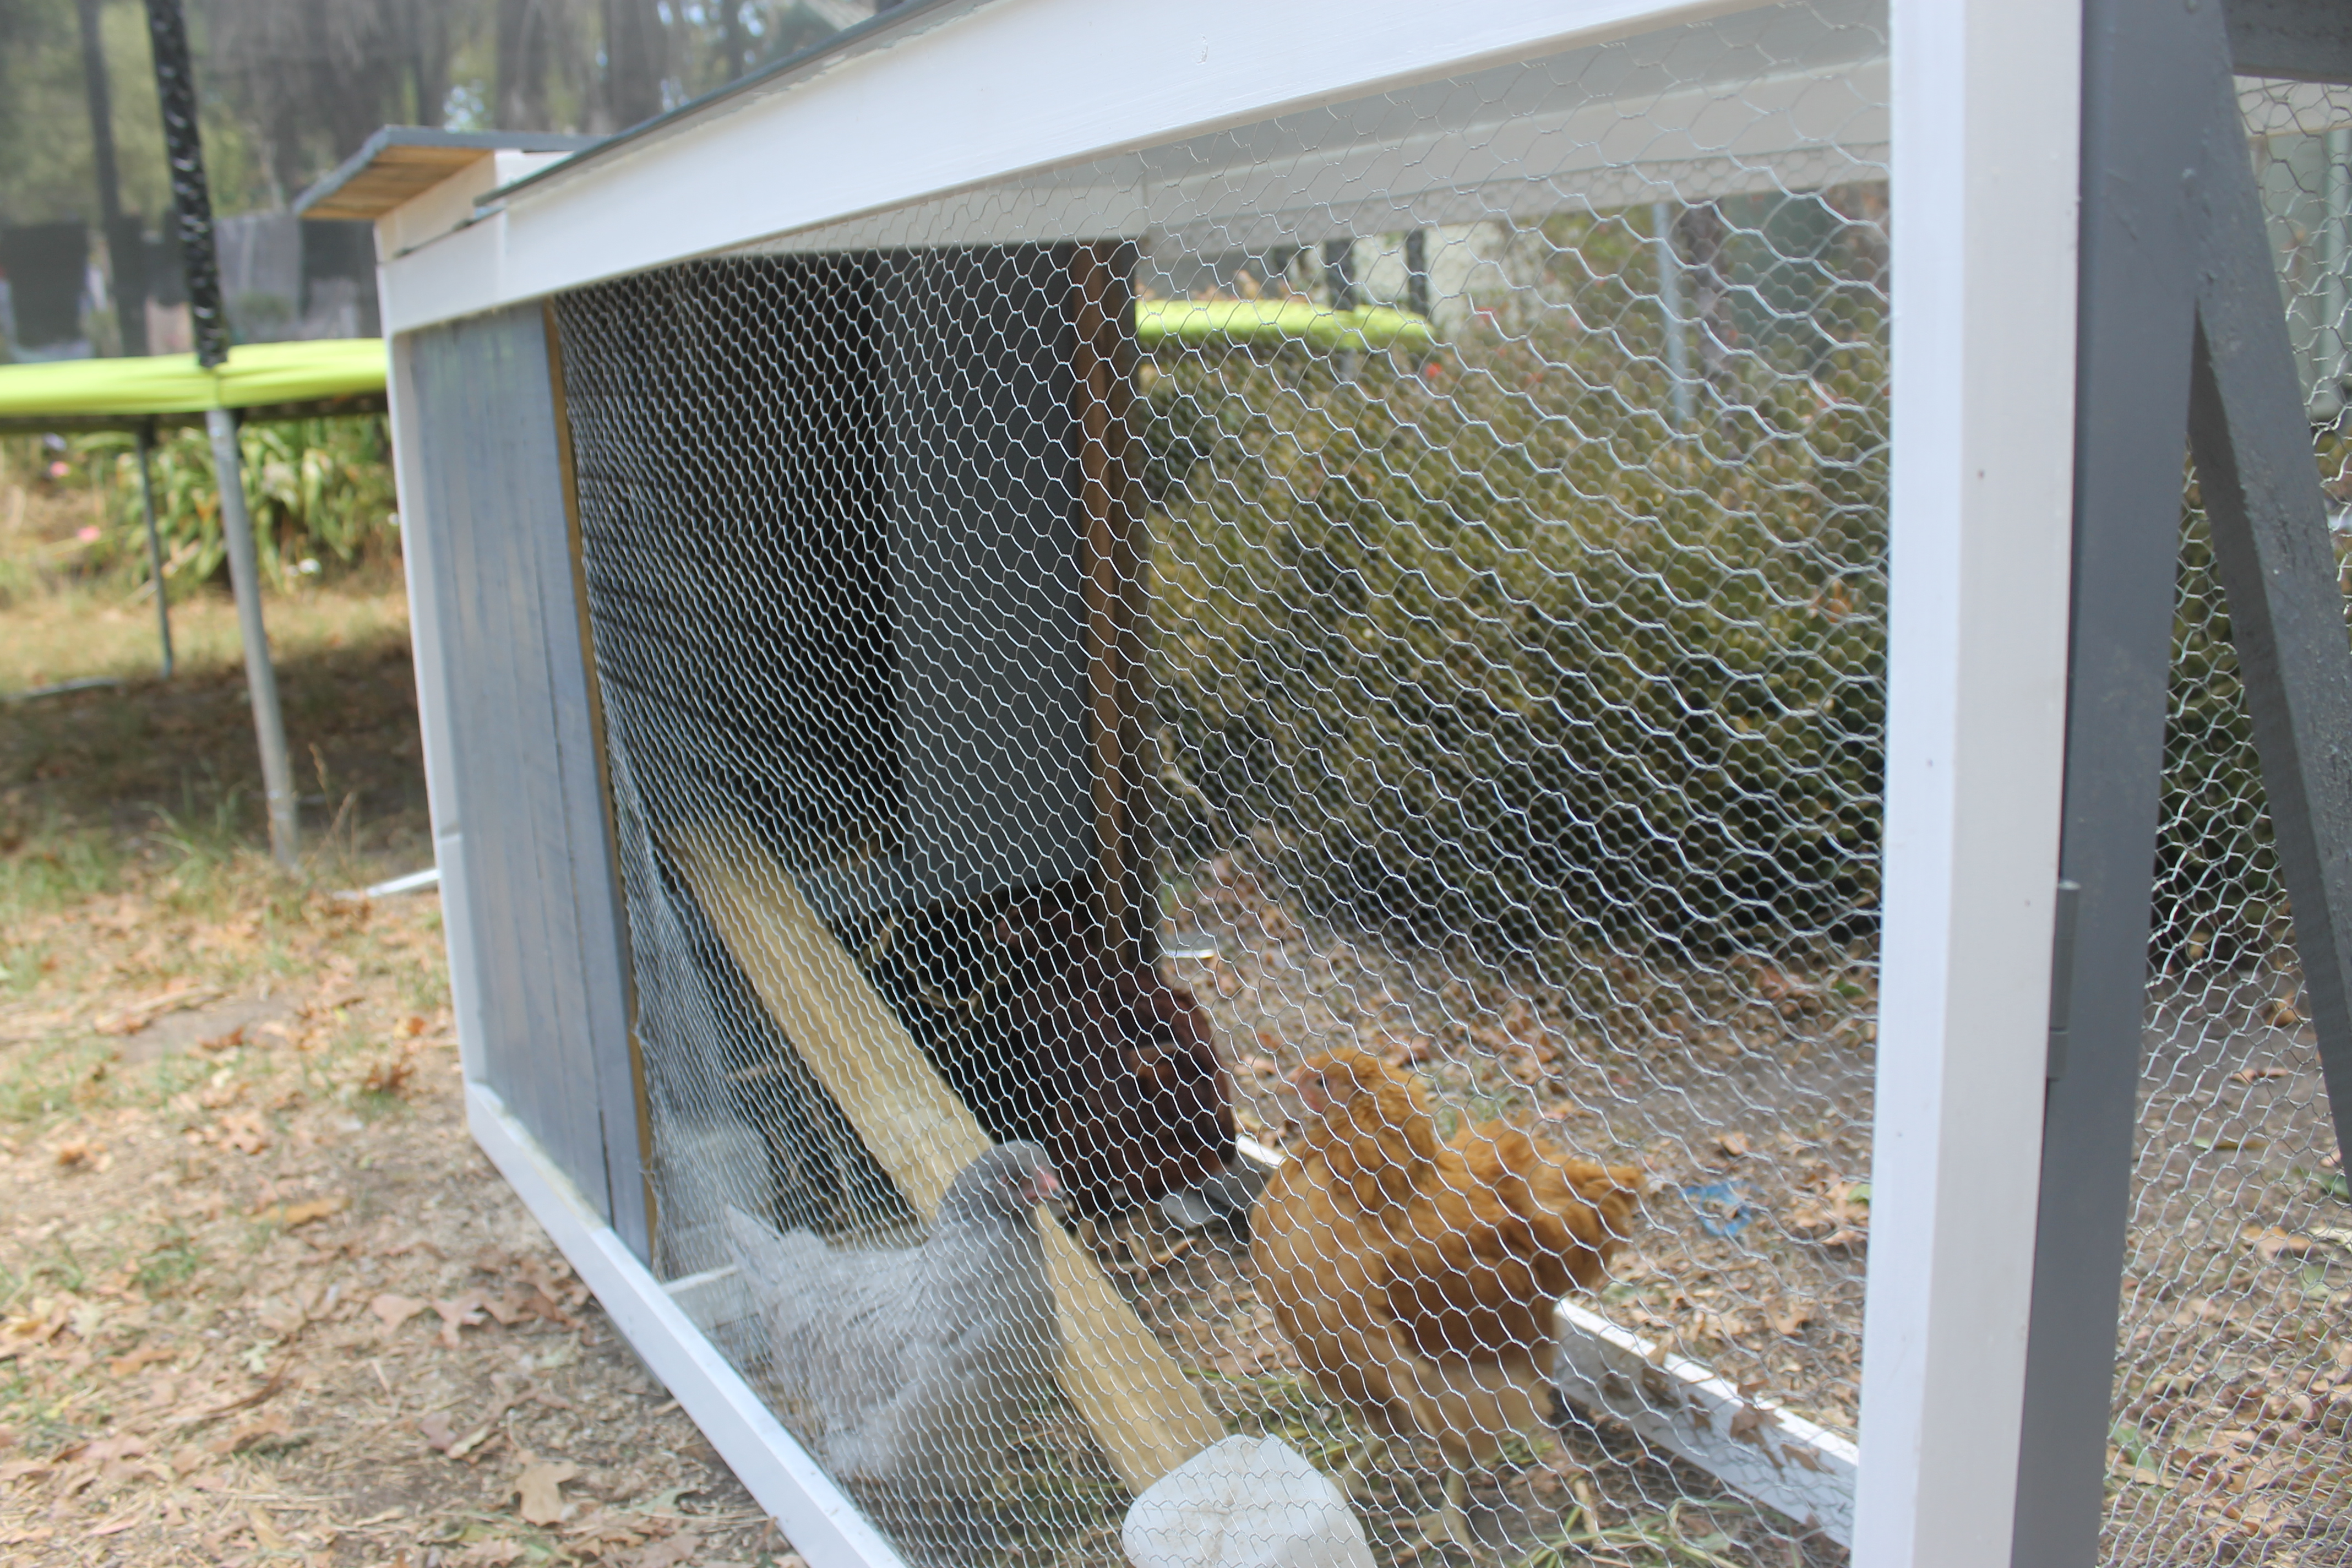 The new chicken house – Urban off gridding